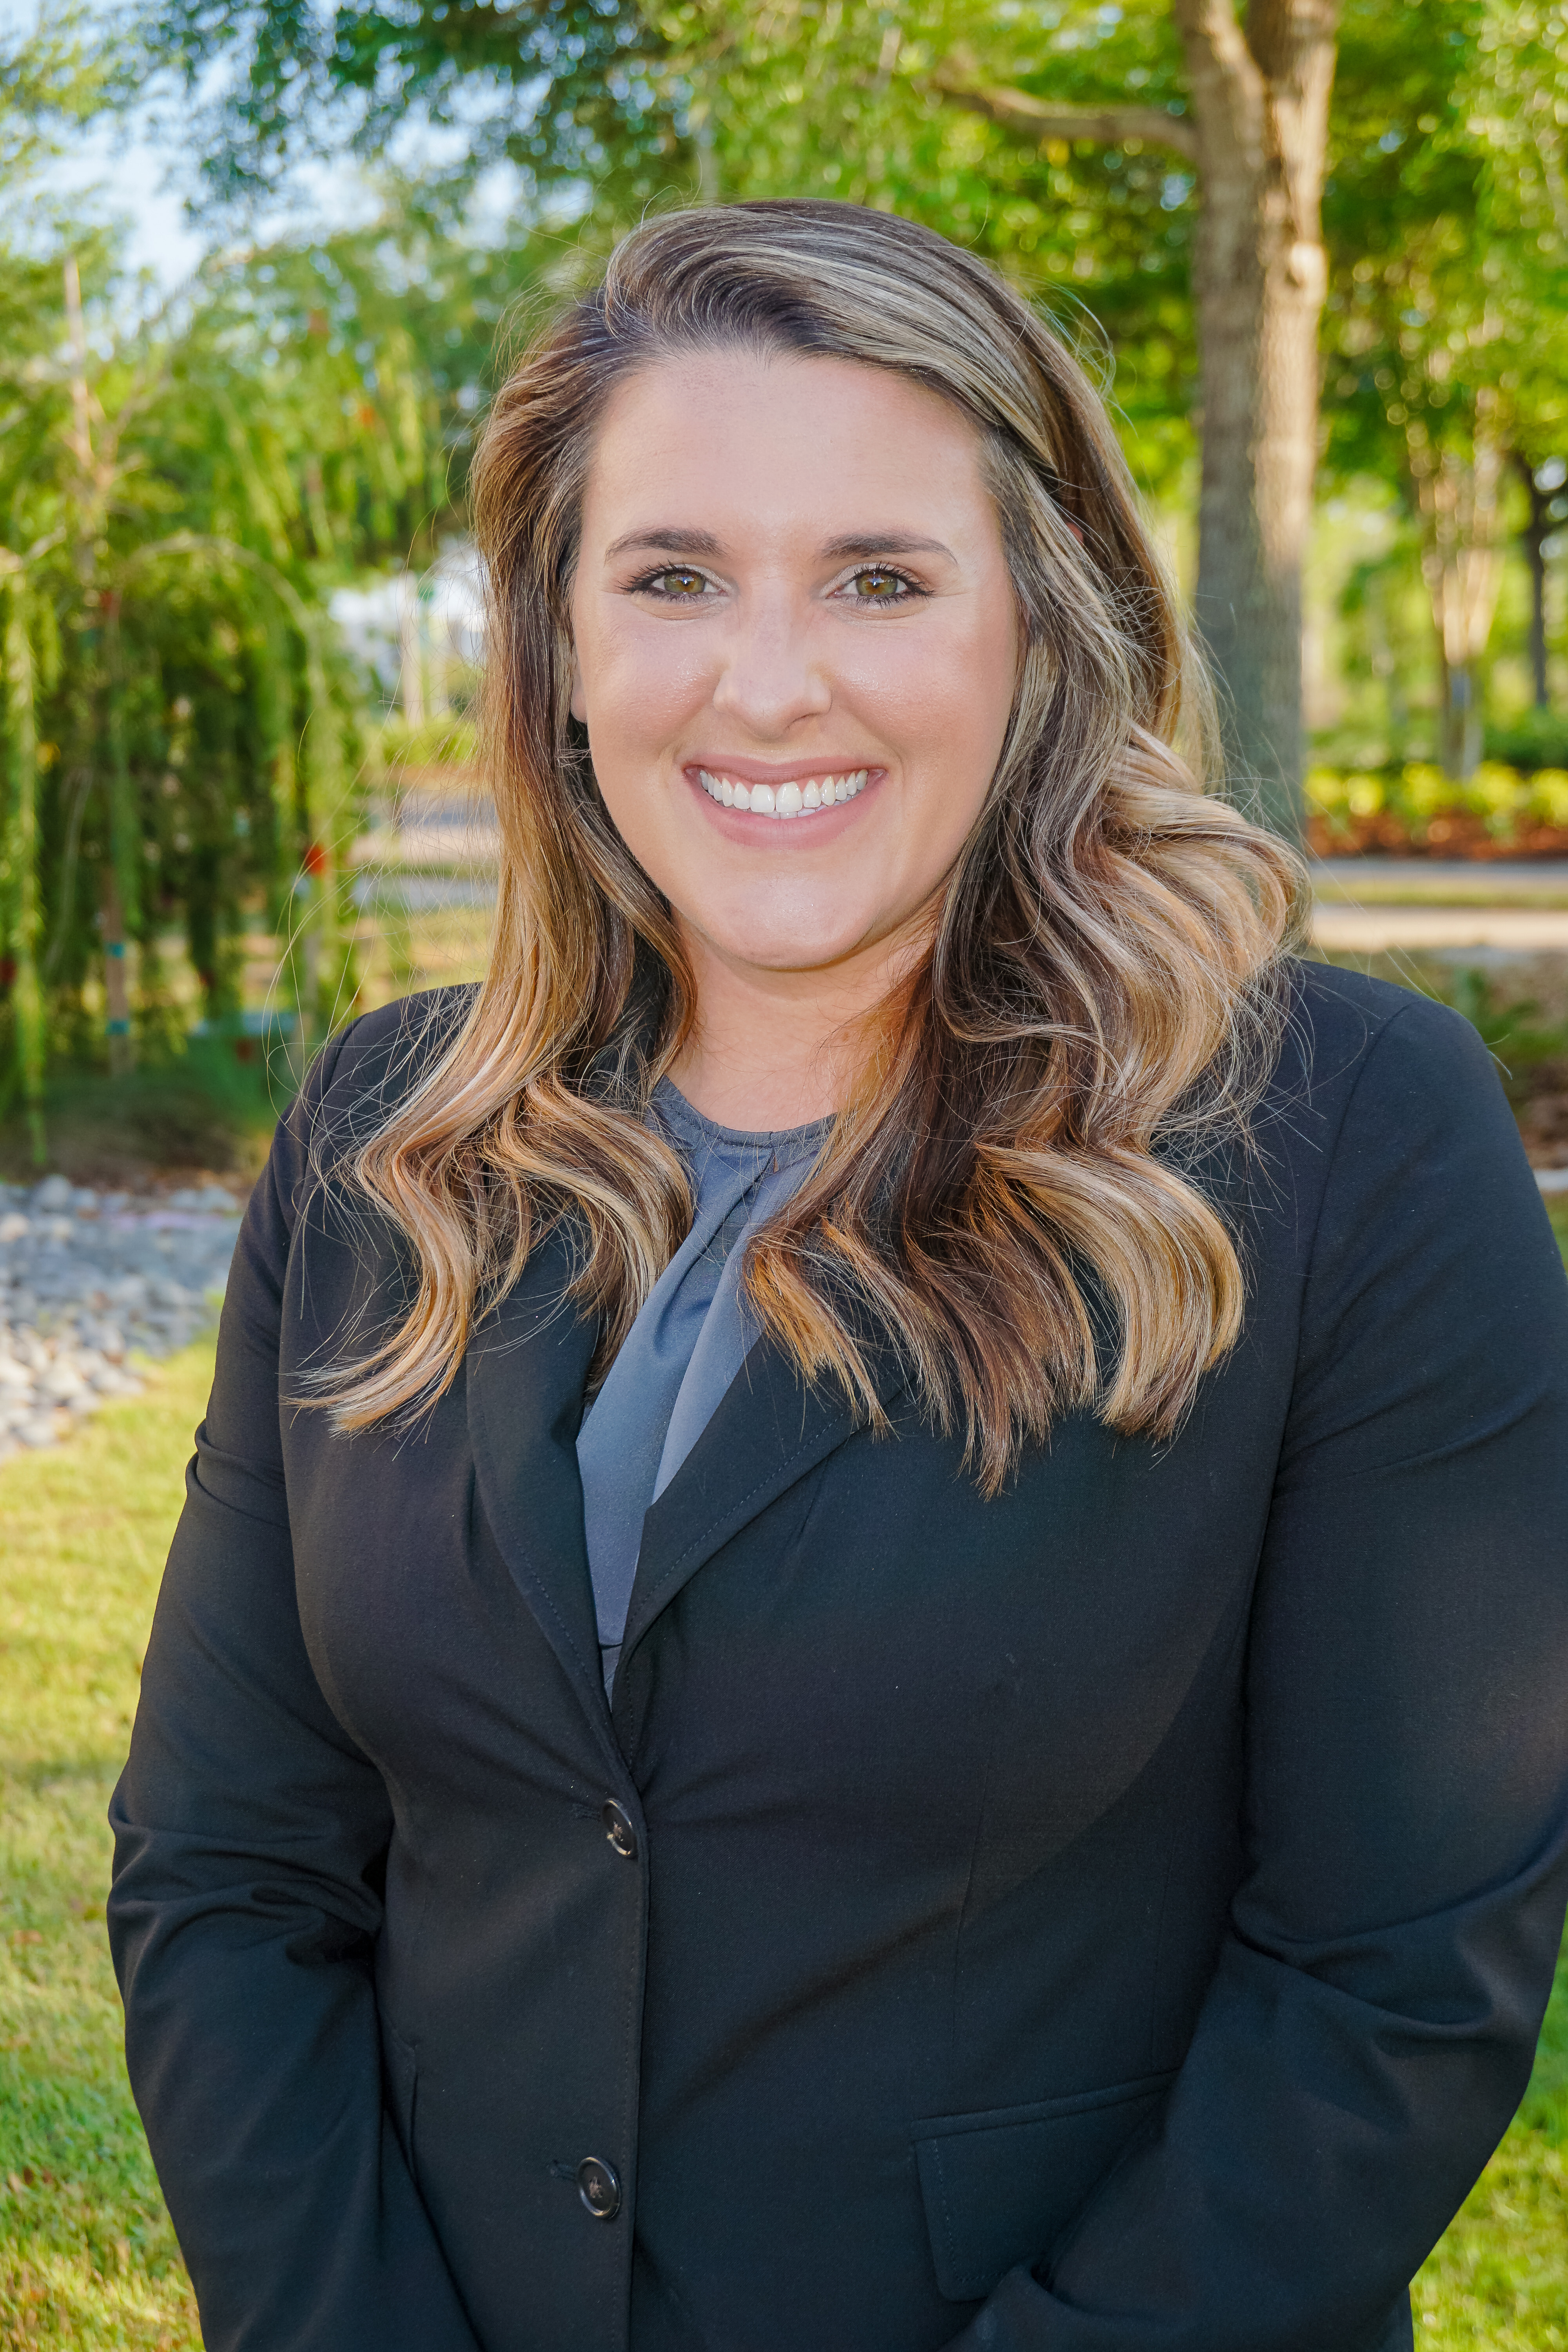 Kristen Harris: Marketing Manager